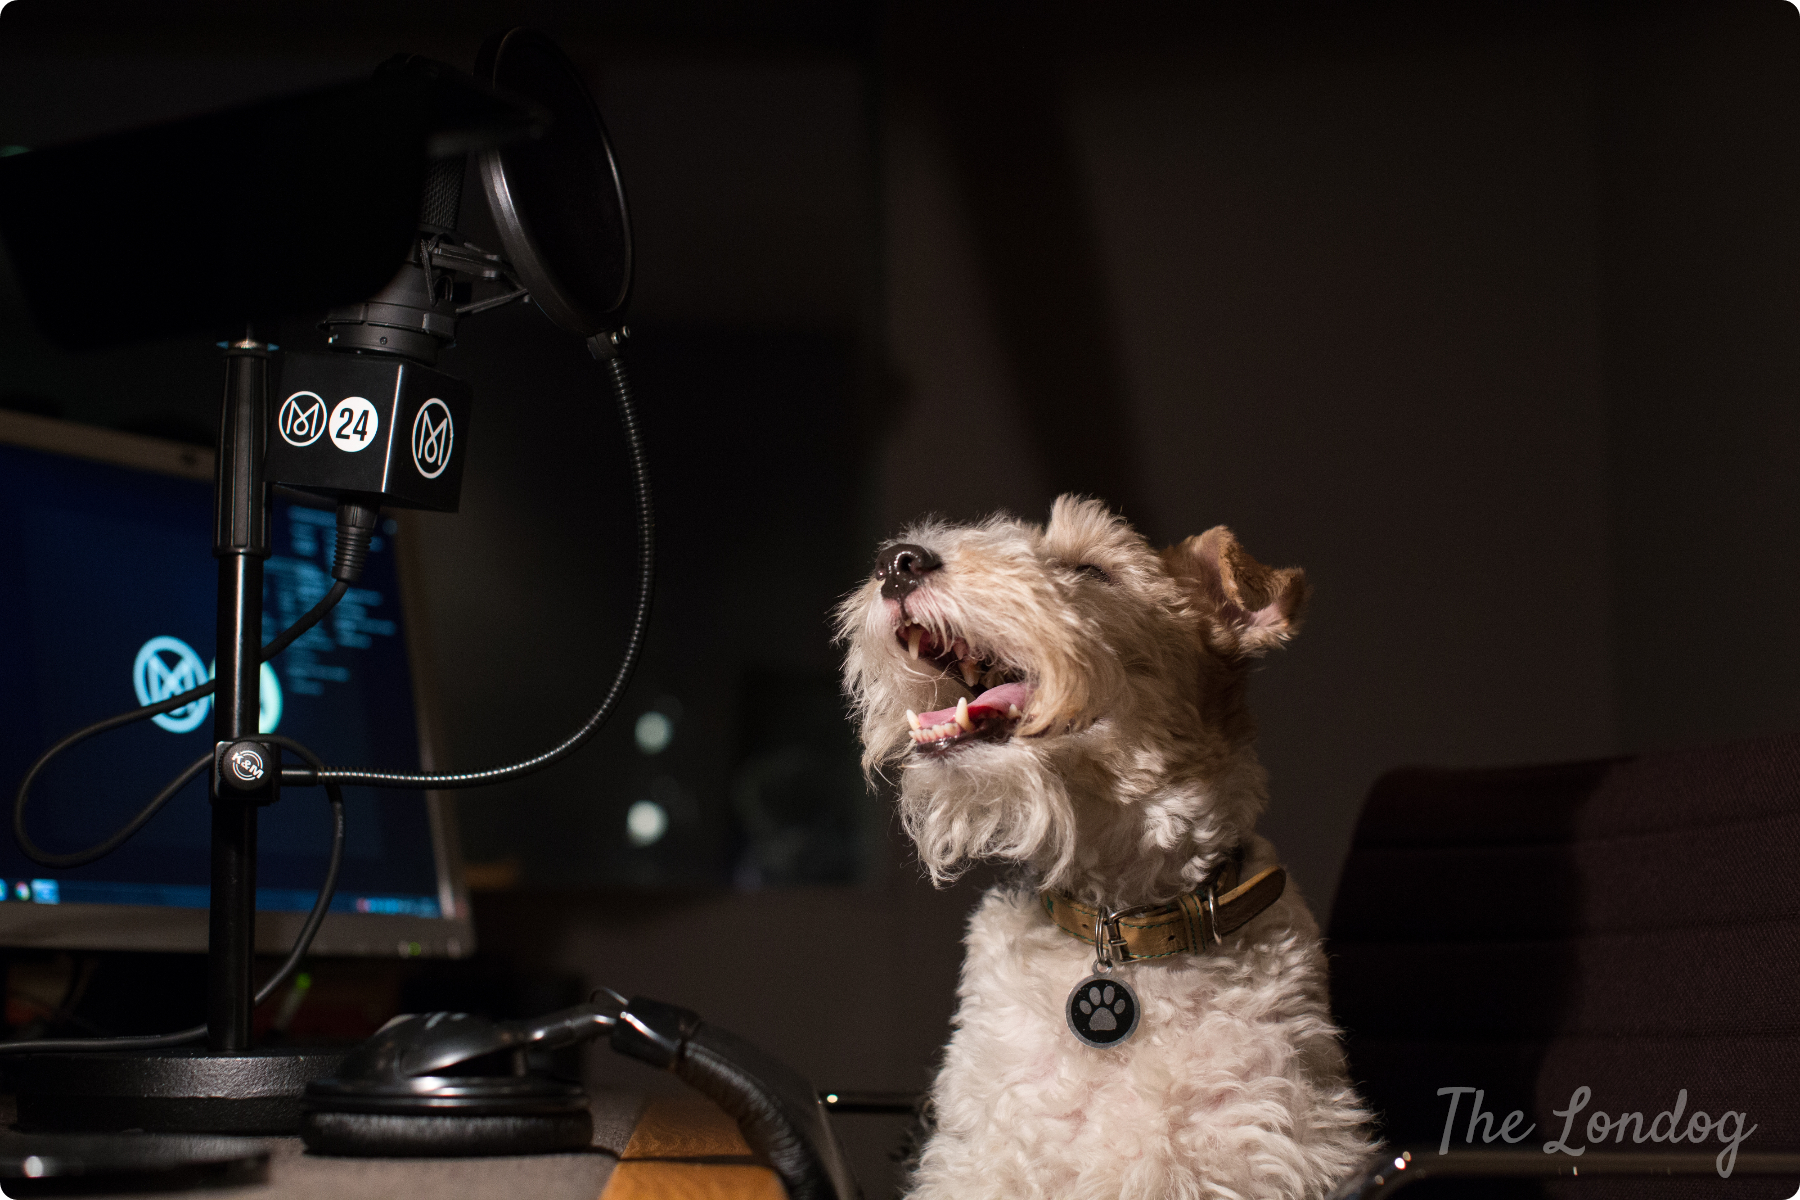 Macy the dog at Monocle Radio's recording studio in the dark